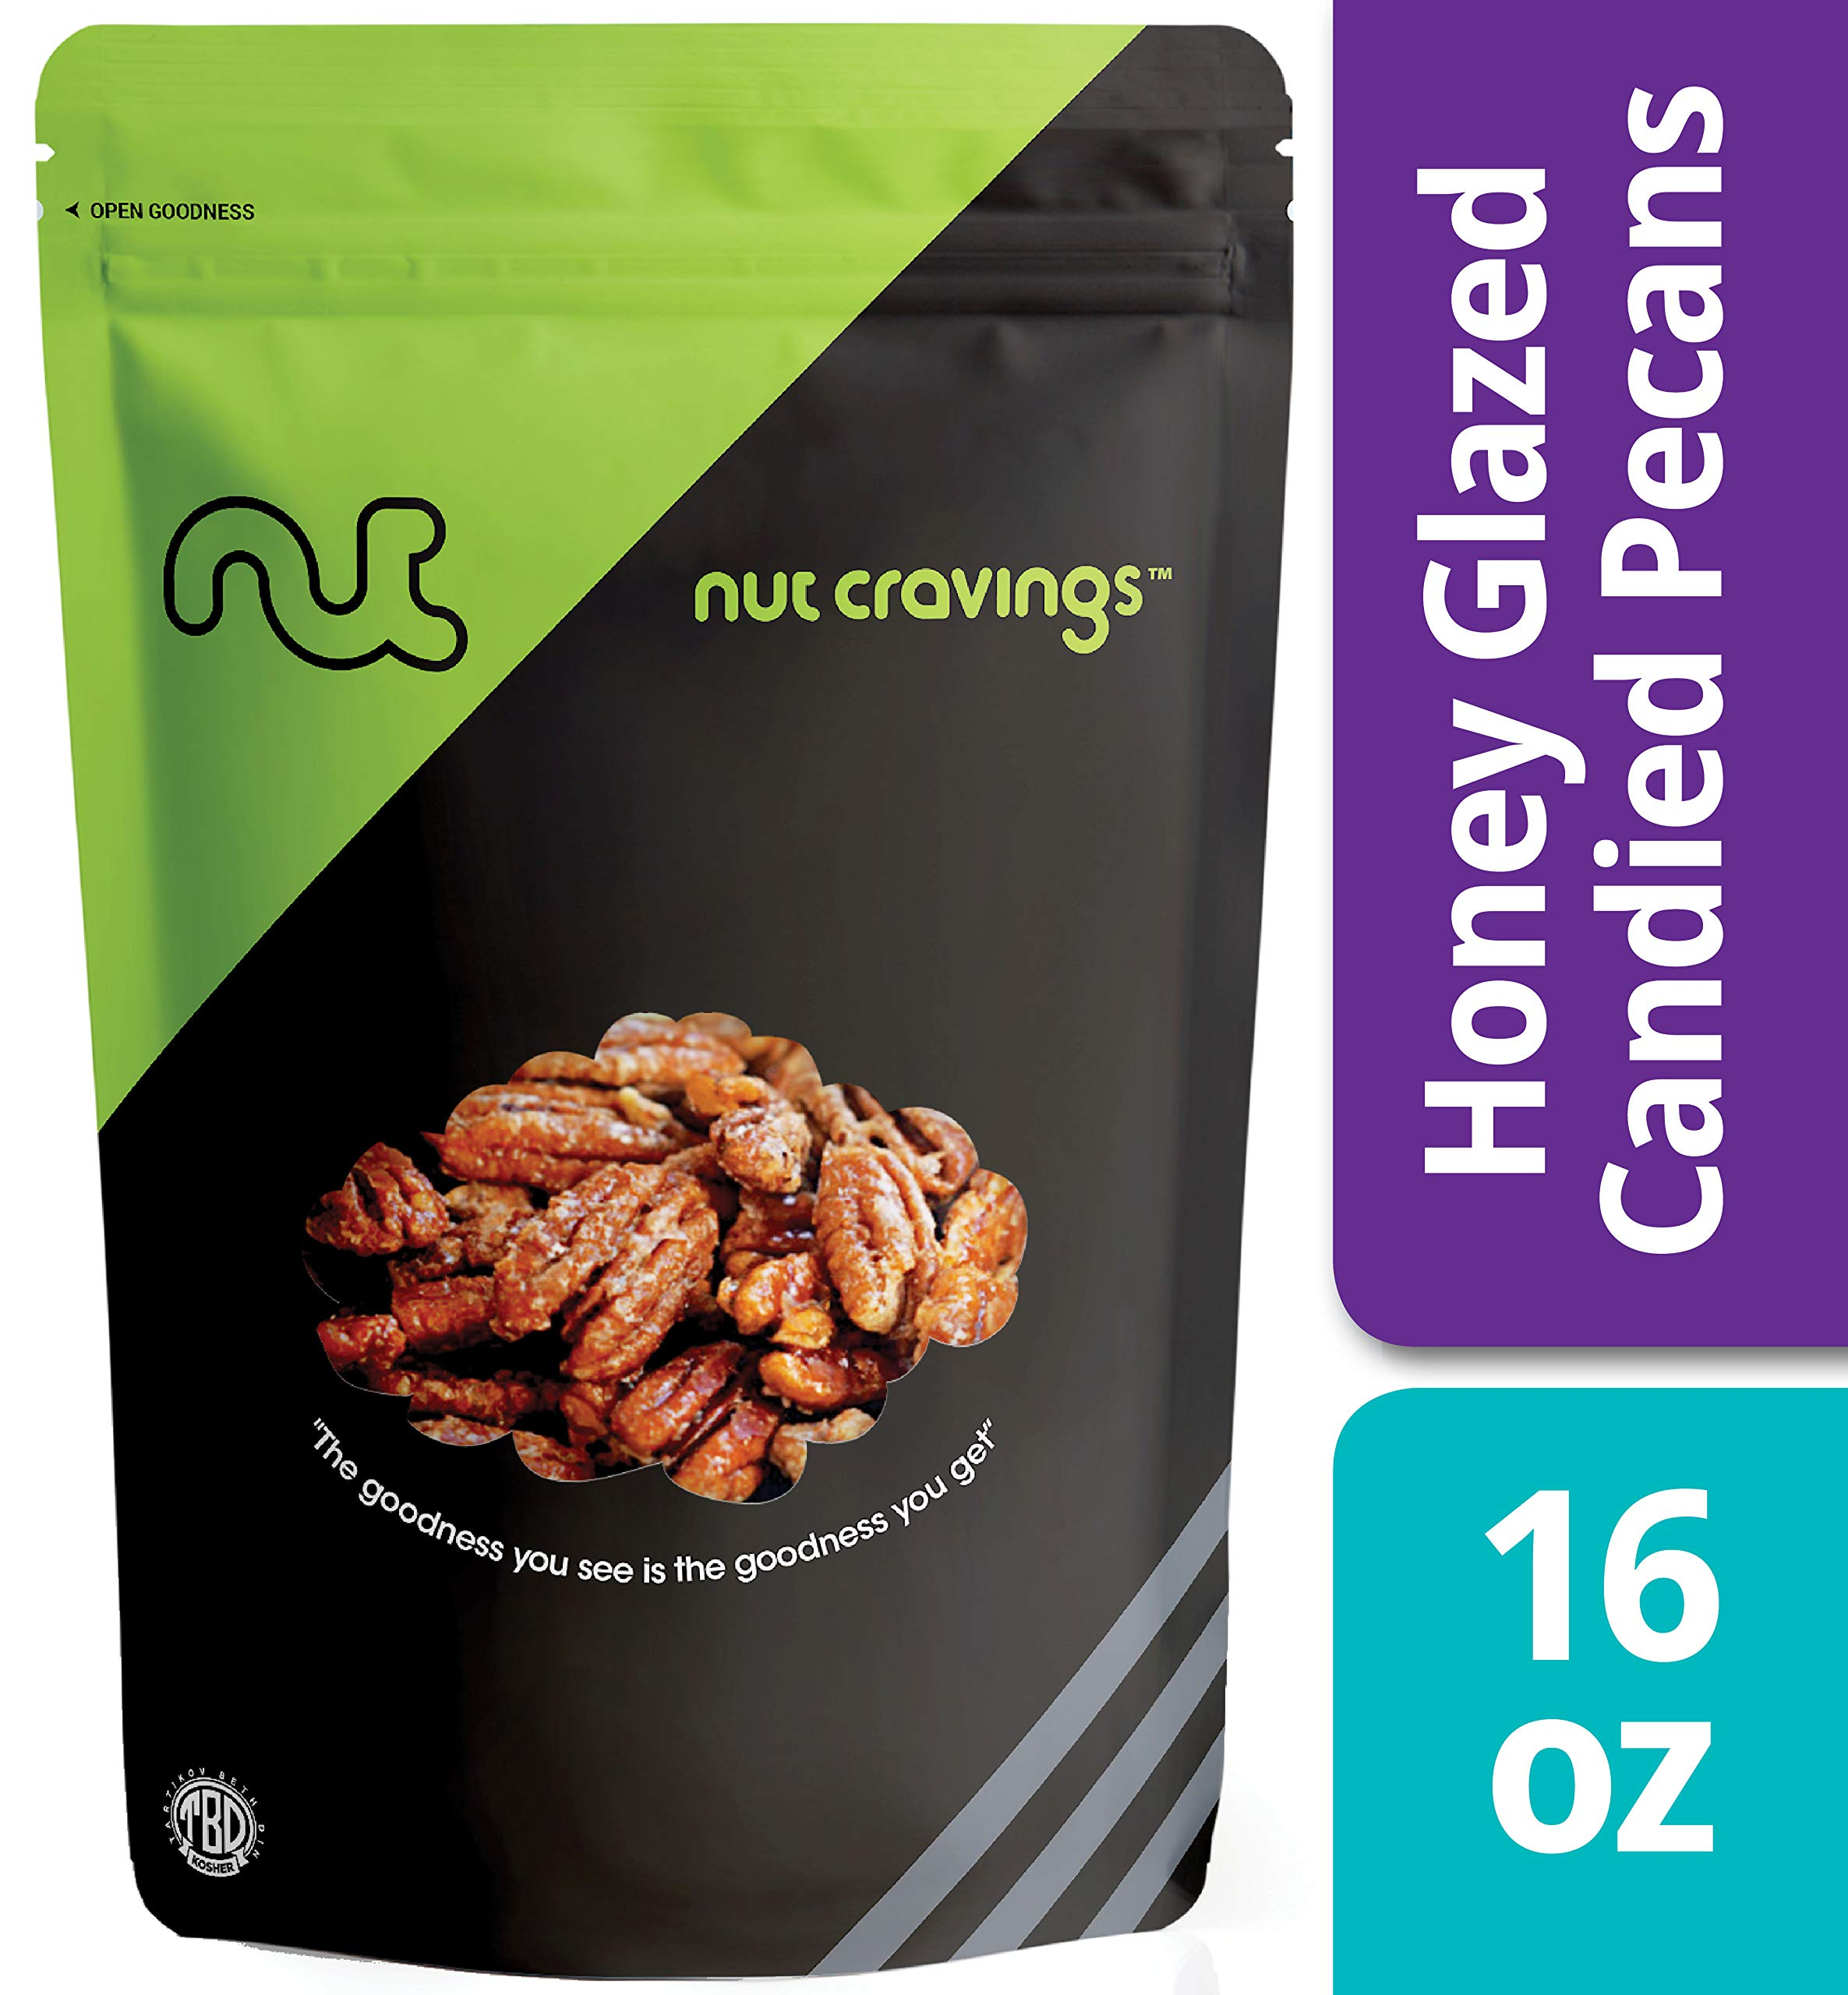 Nut Cravings - Fresh Honey Glazed Candied Pecans (1 Pound) - In Resealable Bag - 16 Ounce by Nut Cravings